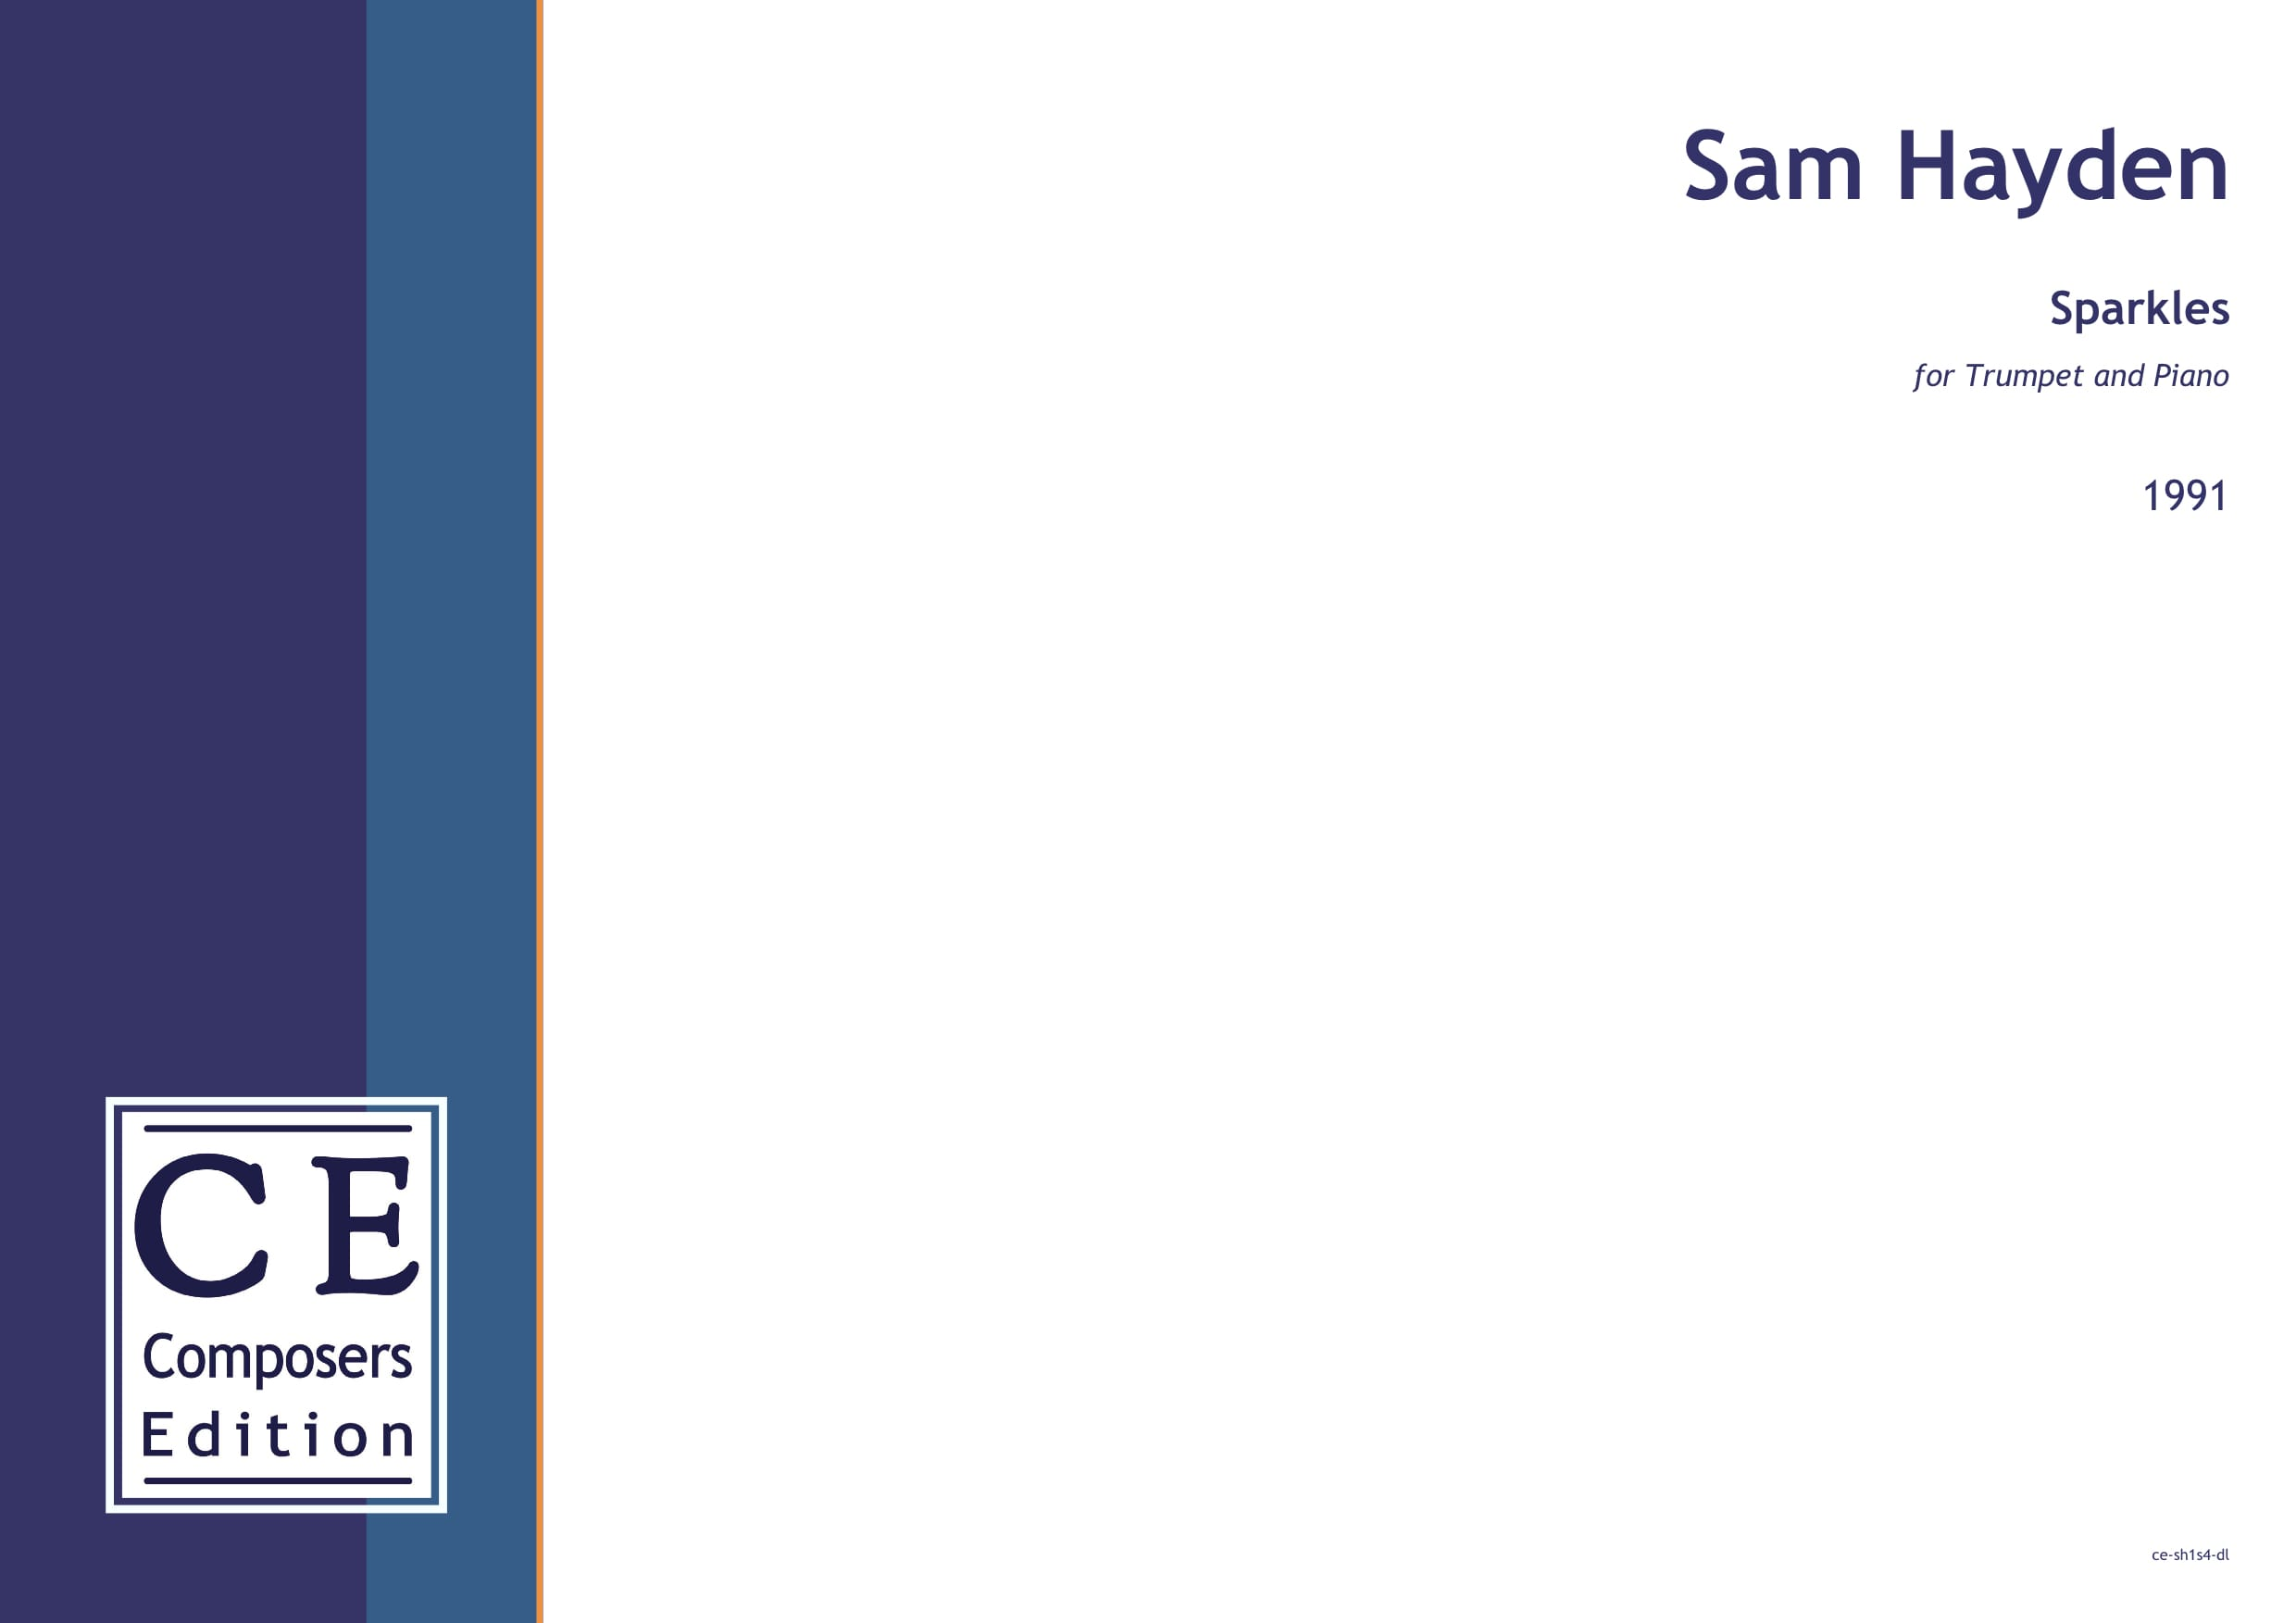 Sam Hayden: Sparkles for Trumpet and Piano